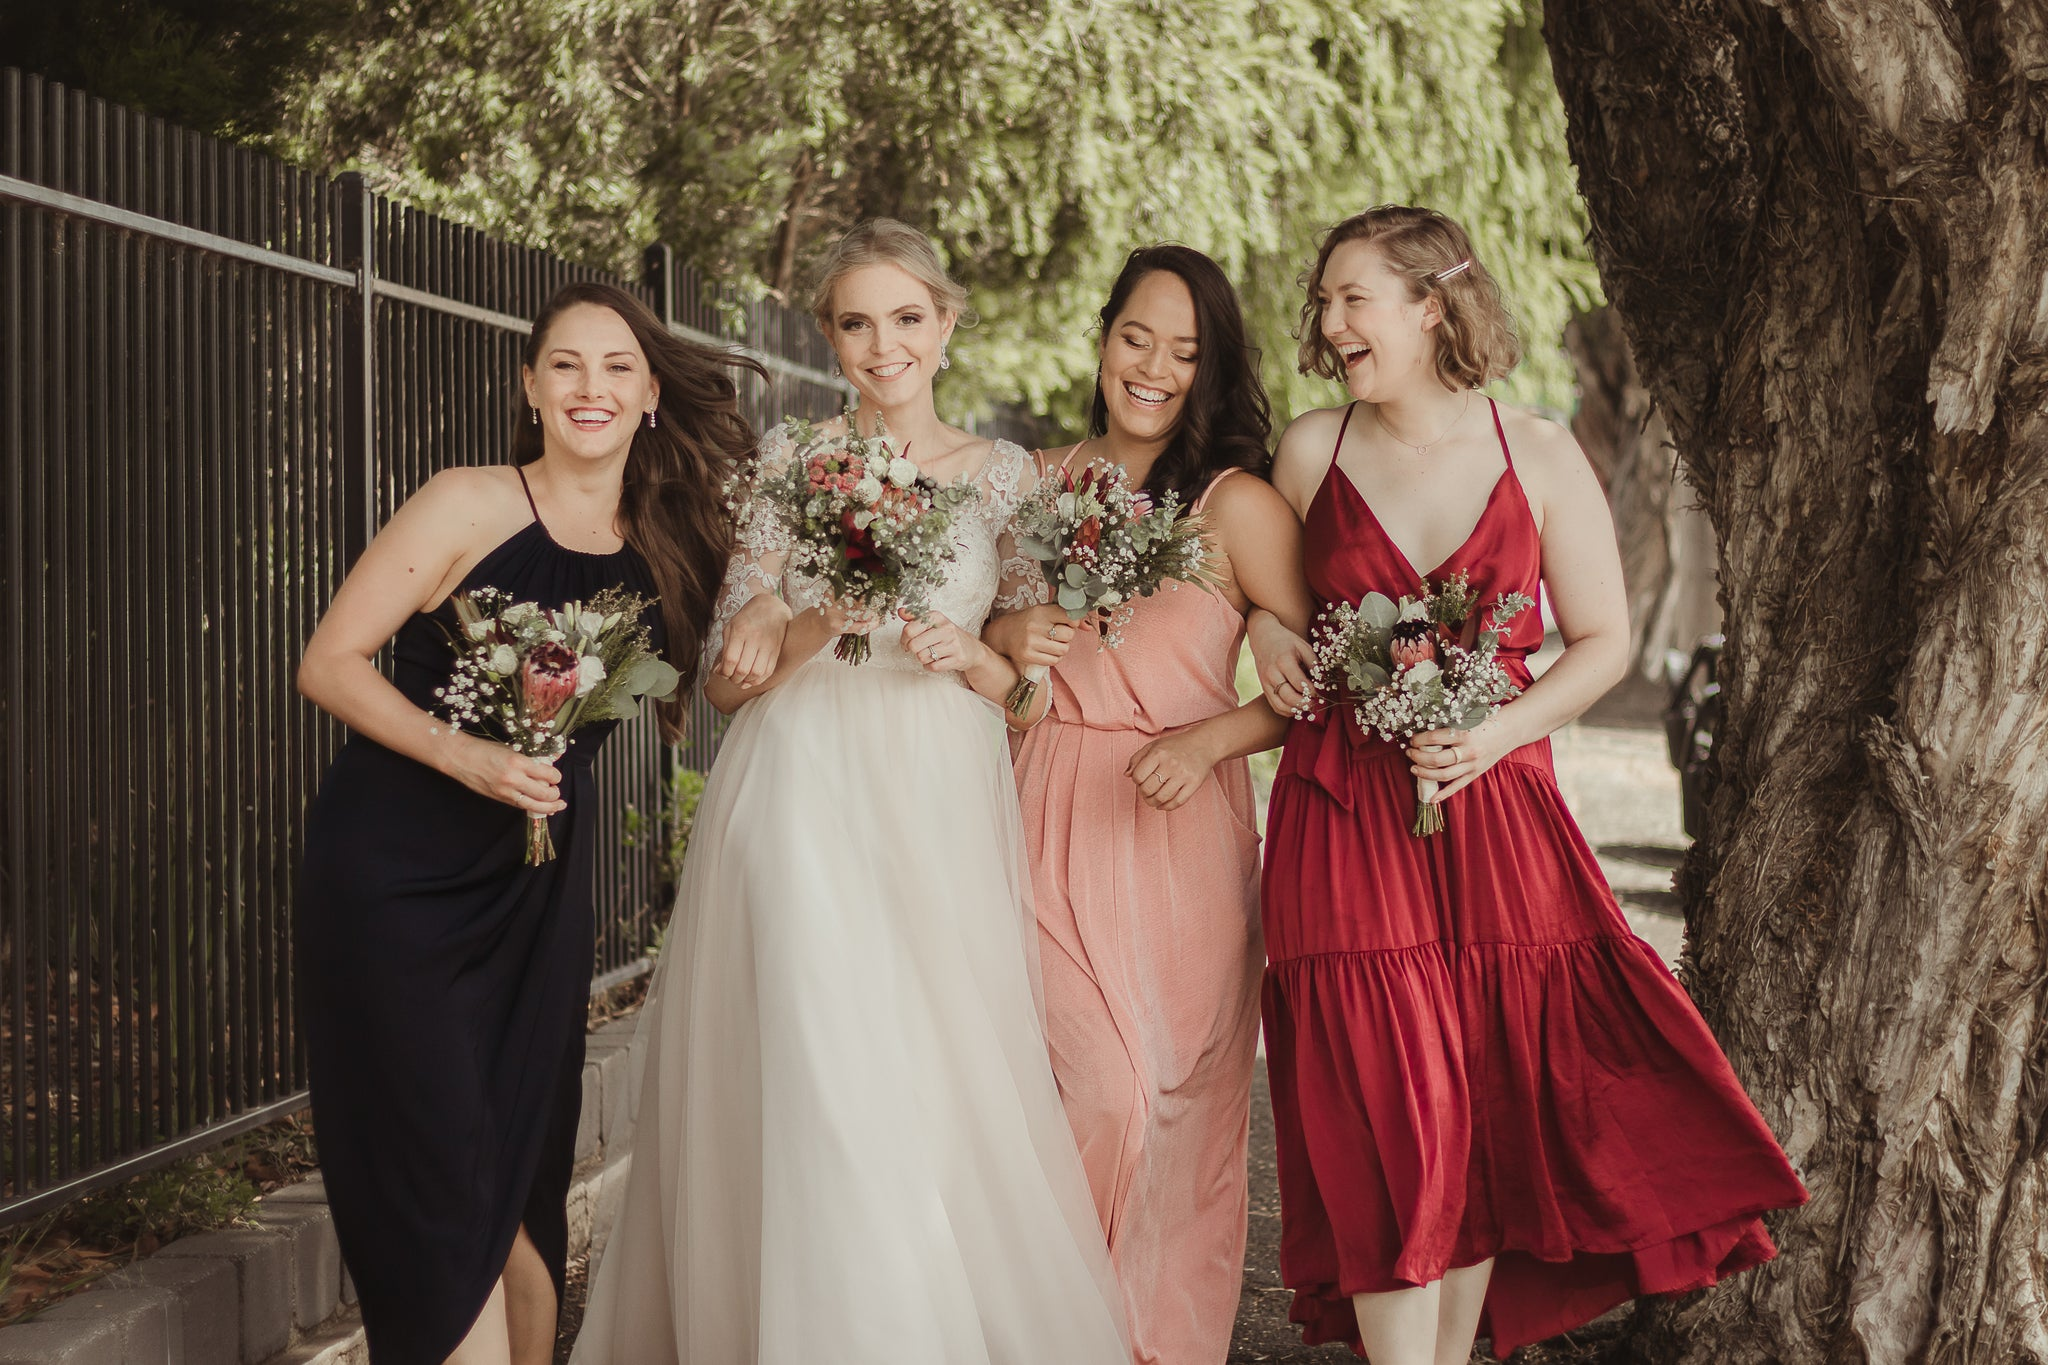 """Bride and three bridesmaids, wearing eclectic dresses in raspberry, pink, white and navy. Walking down the street linking arms and holding little bouquets of flowers, looks like a scene from """"Sex and The City"""". At Geelong Venue, The Warehouse."""